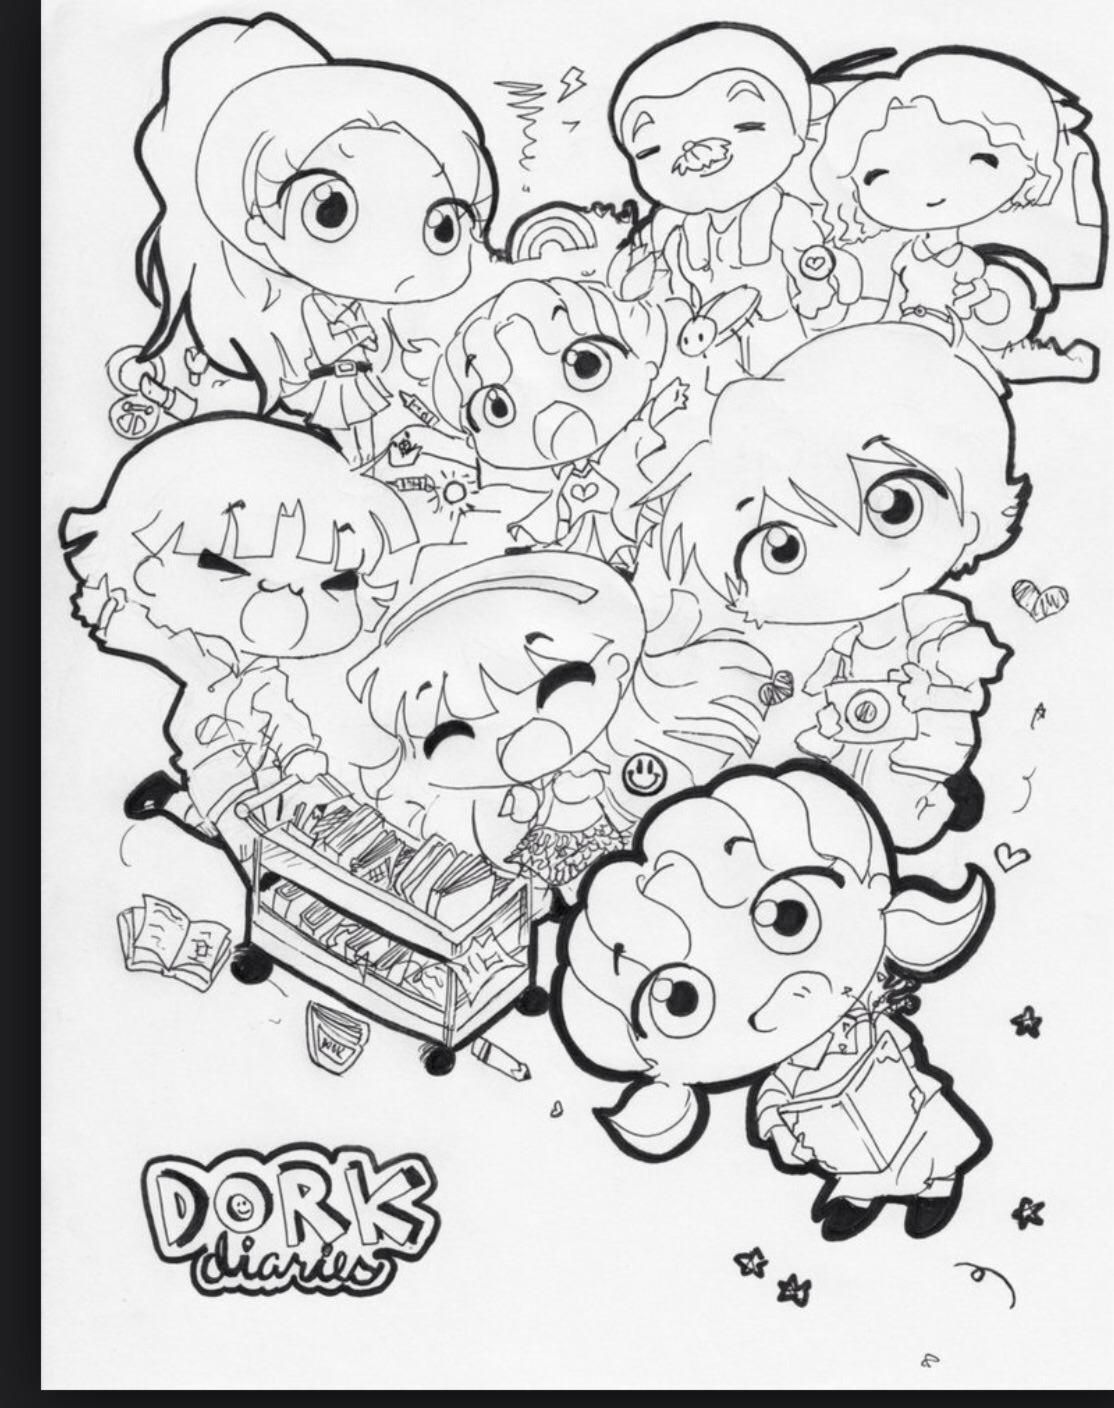 Coloring pages for dork diaries - What Dork Diaries Character Are You 1